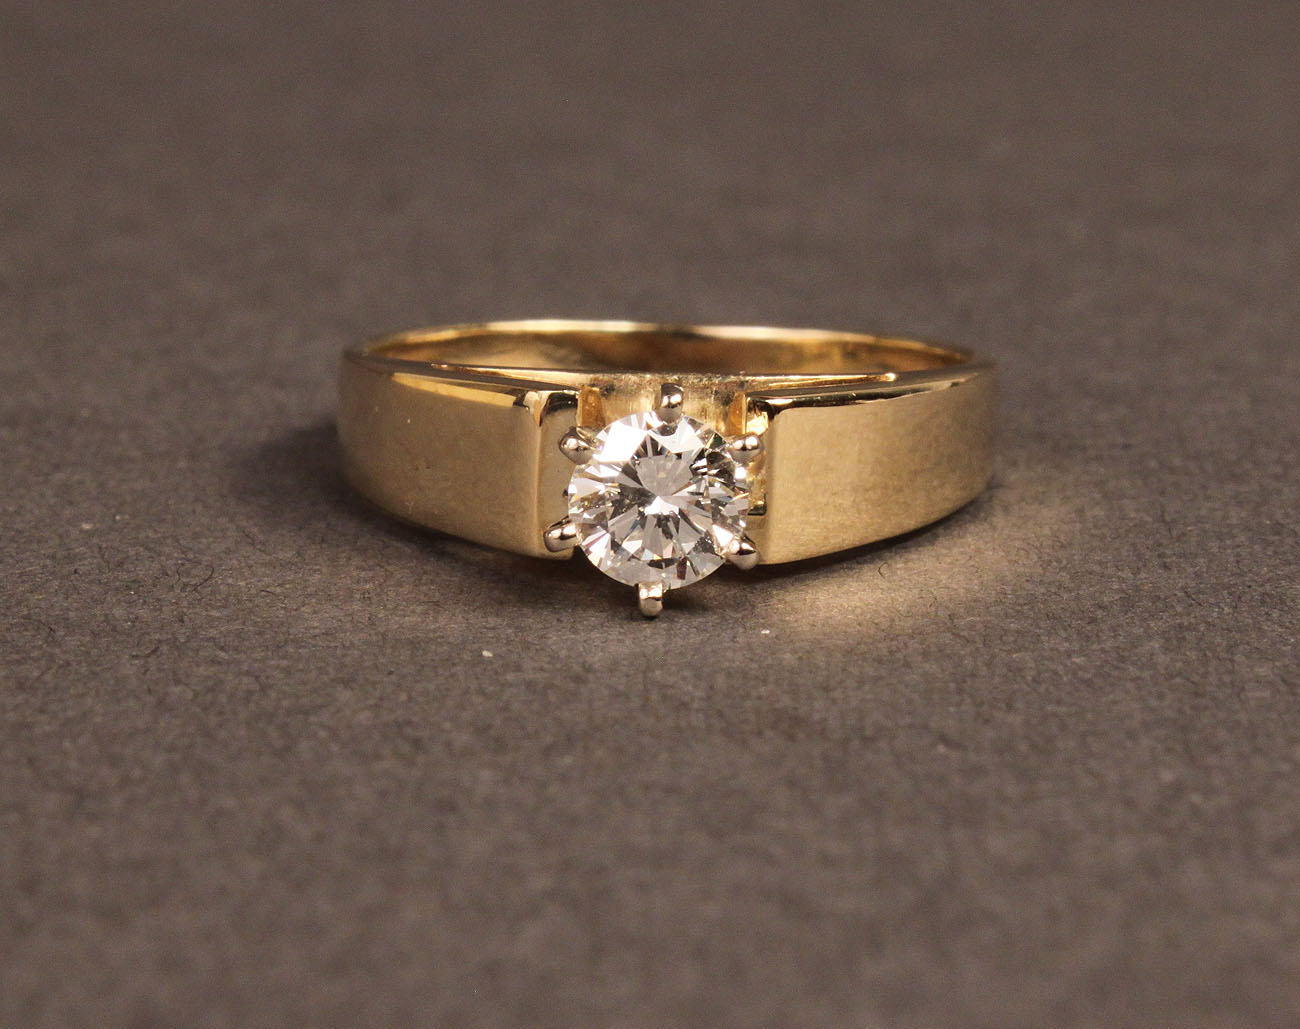 Lot 101a One Half Carat Diamond Solitaire Ring 14k Gold